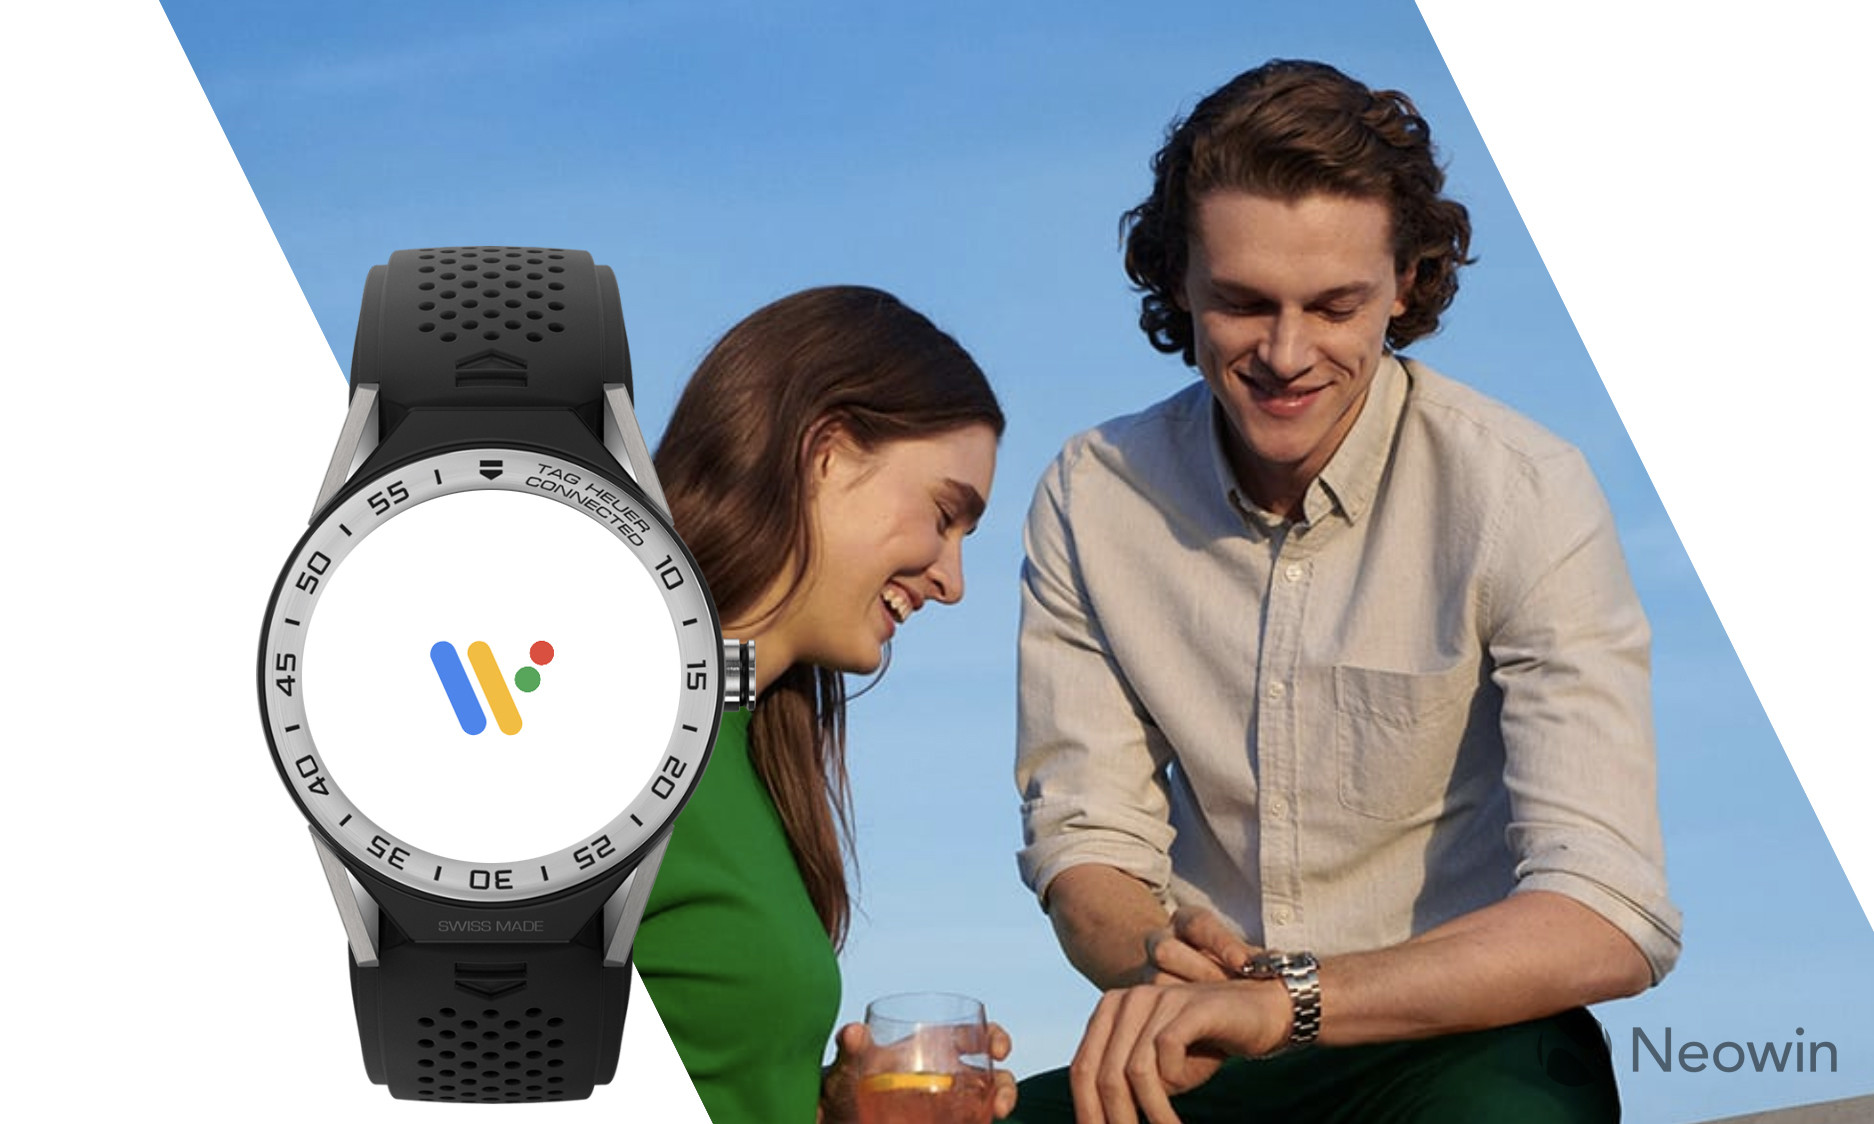 Google's Pixel Watch is not going to launch in 2018